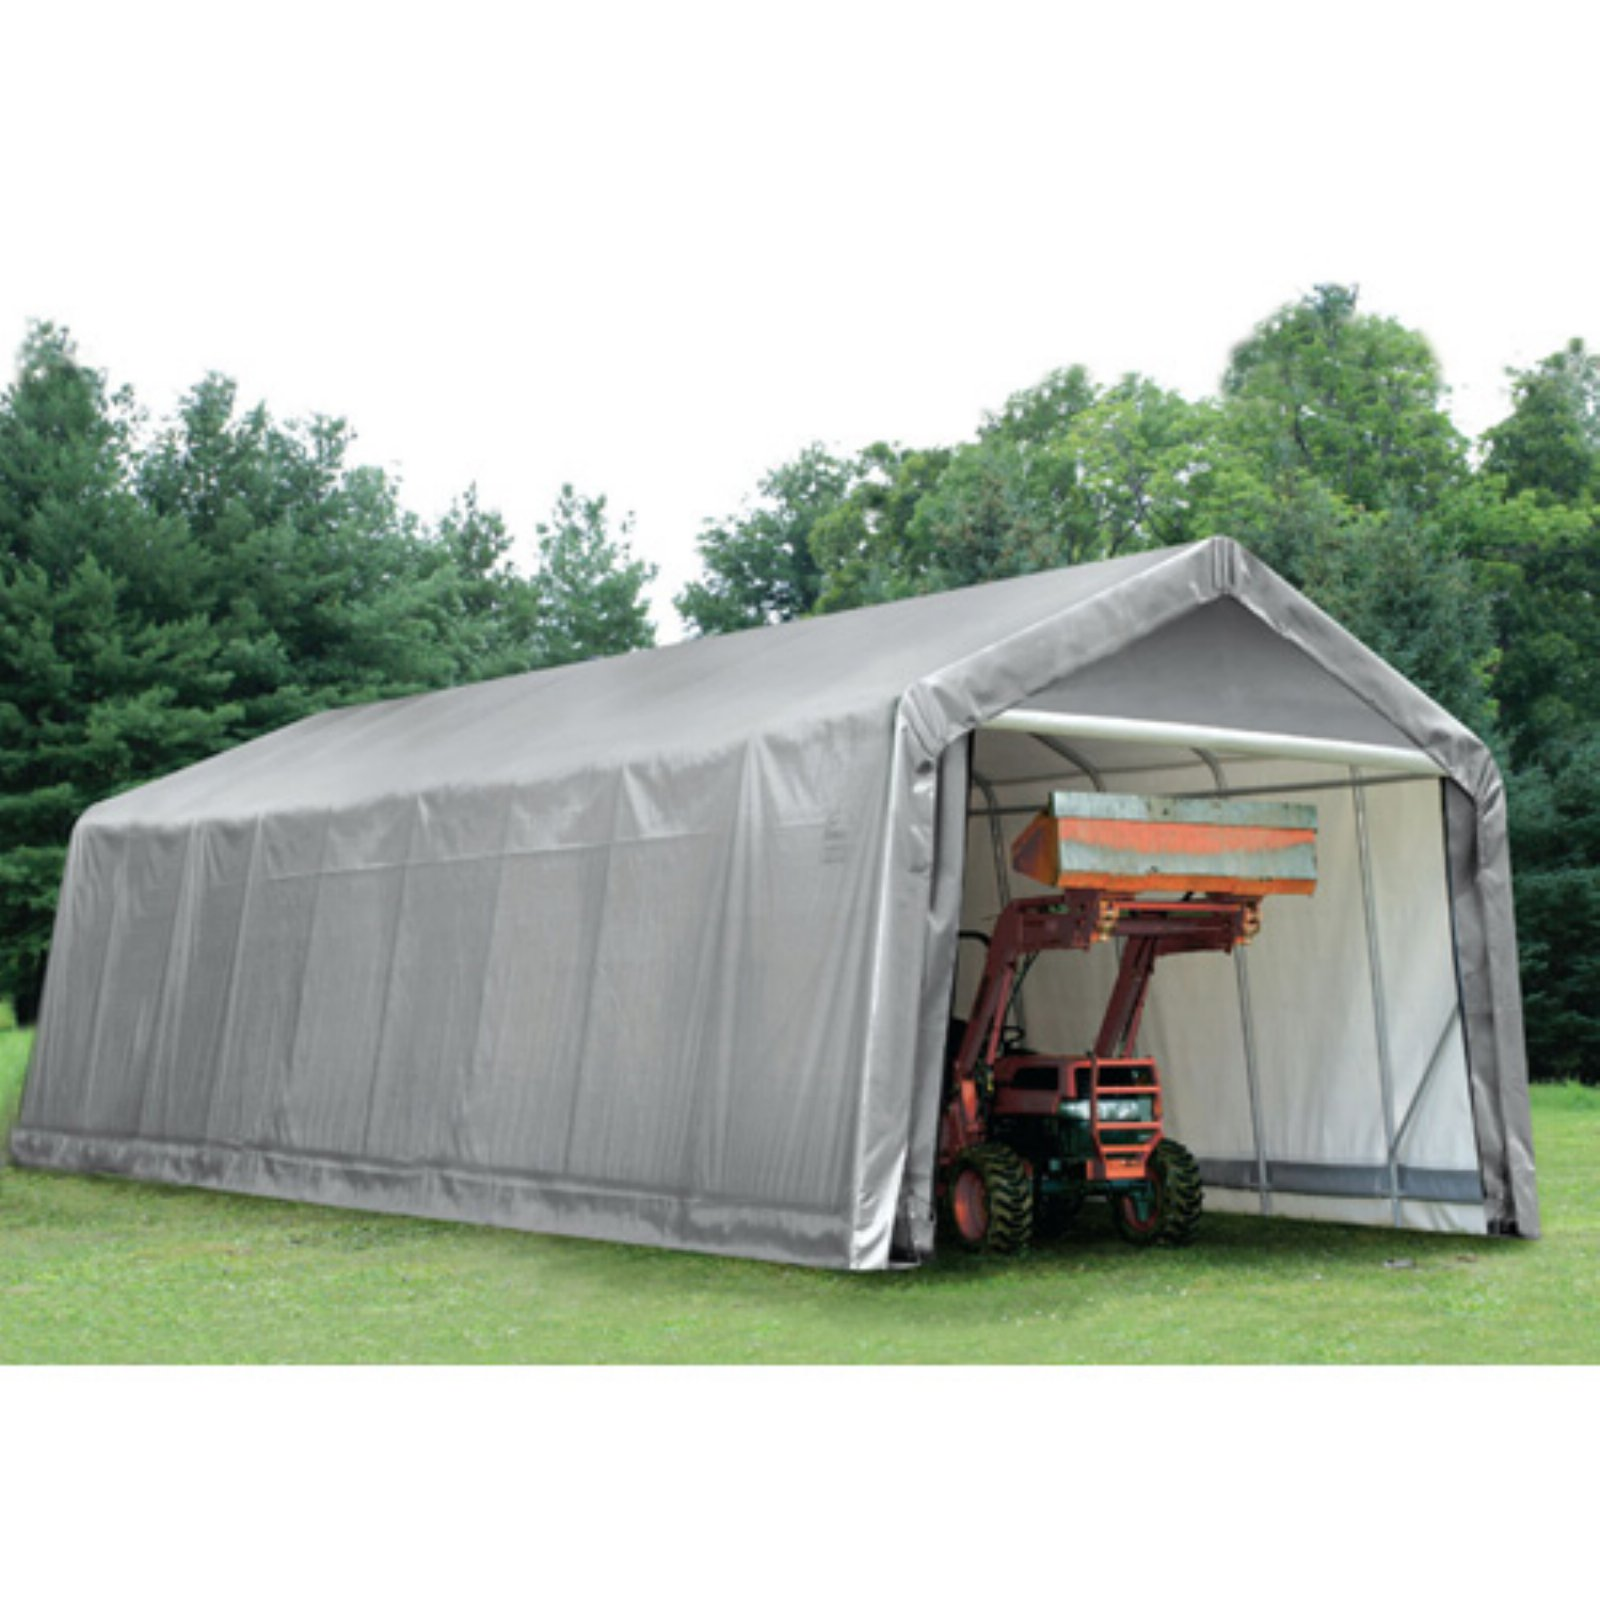 ShelterLogic 14' x 36' x 16' Peak Style Shelter, Gray